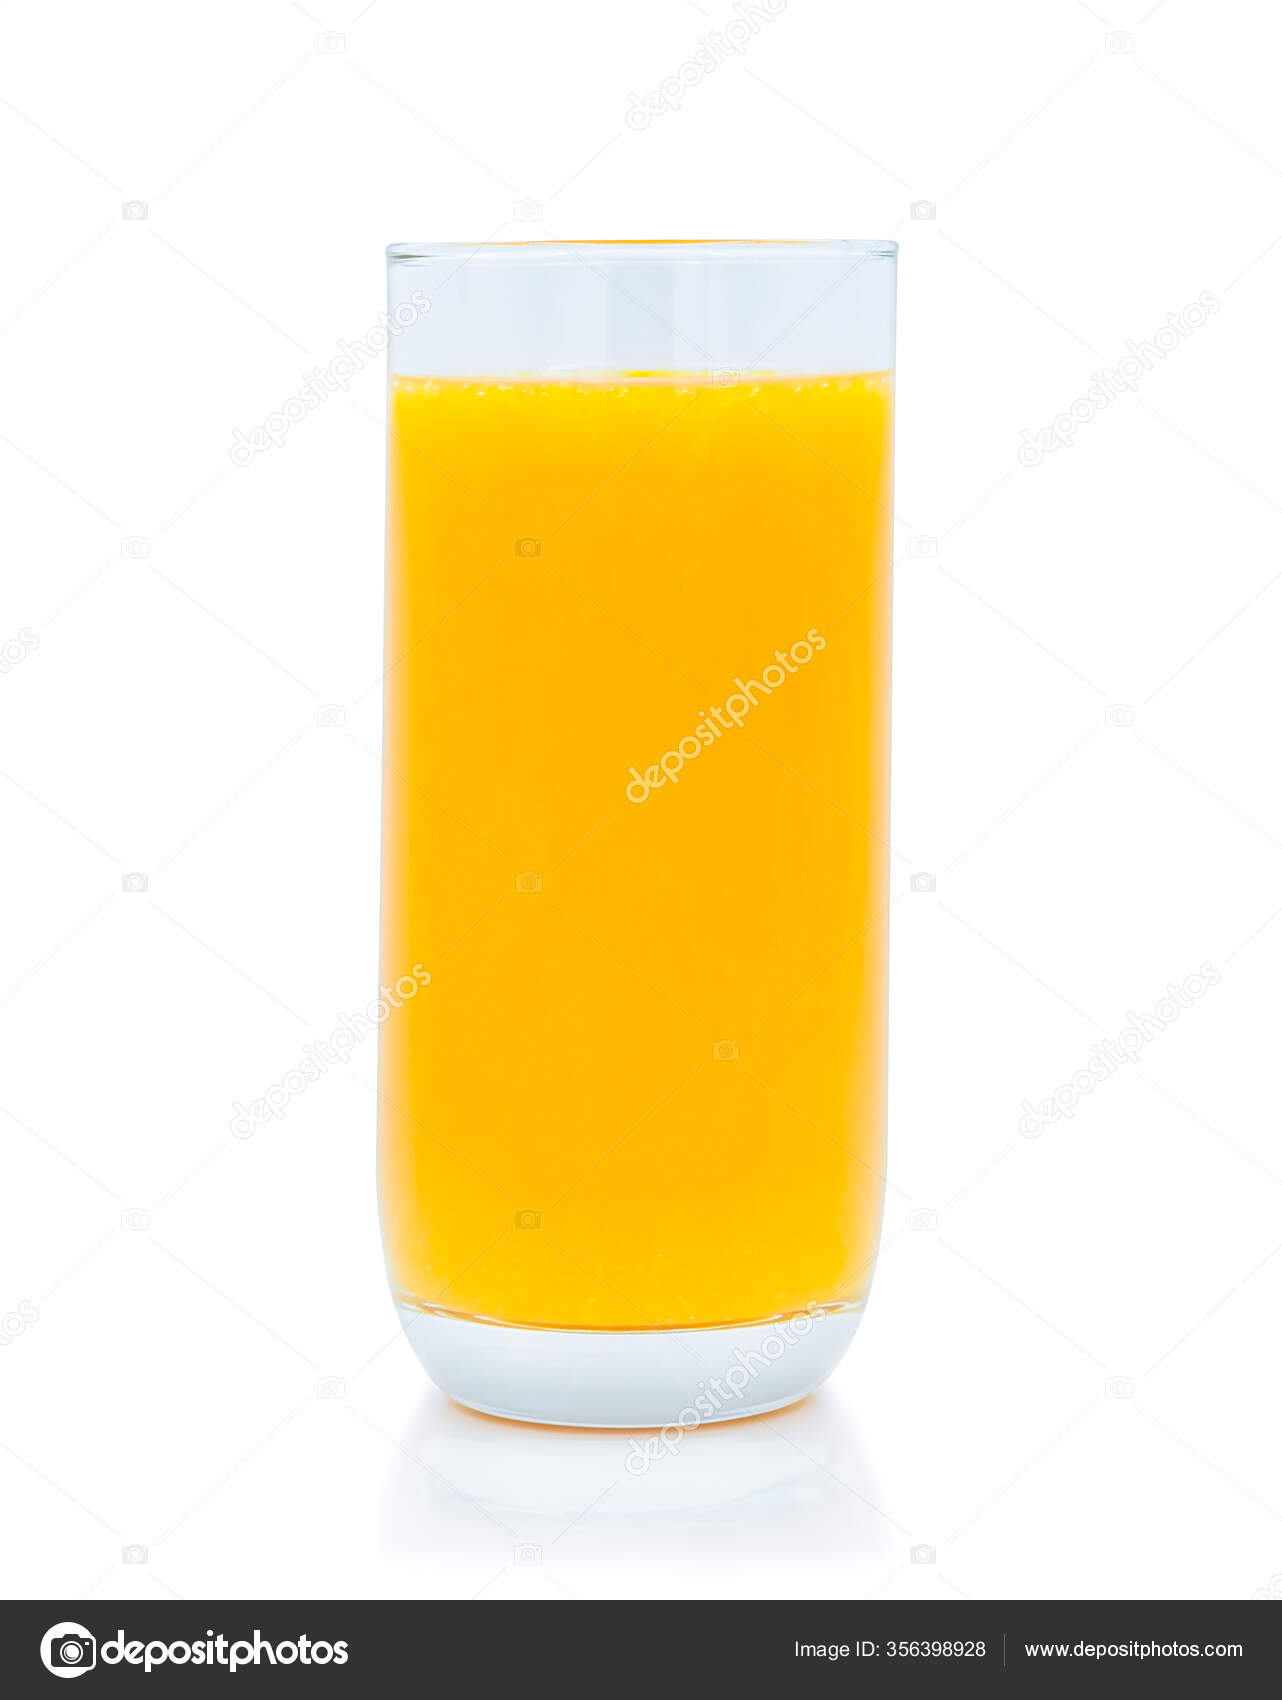 Close Glass Squeezed Orange Juice Yellow Color Isolated White Background Stock Photo C Setthaphatdc415 Gmail Com 356398928,What Colour Is Orange And Blue